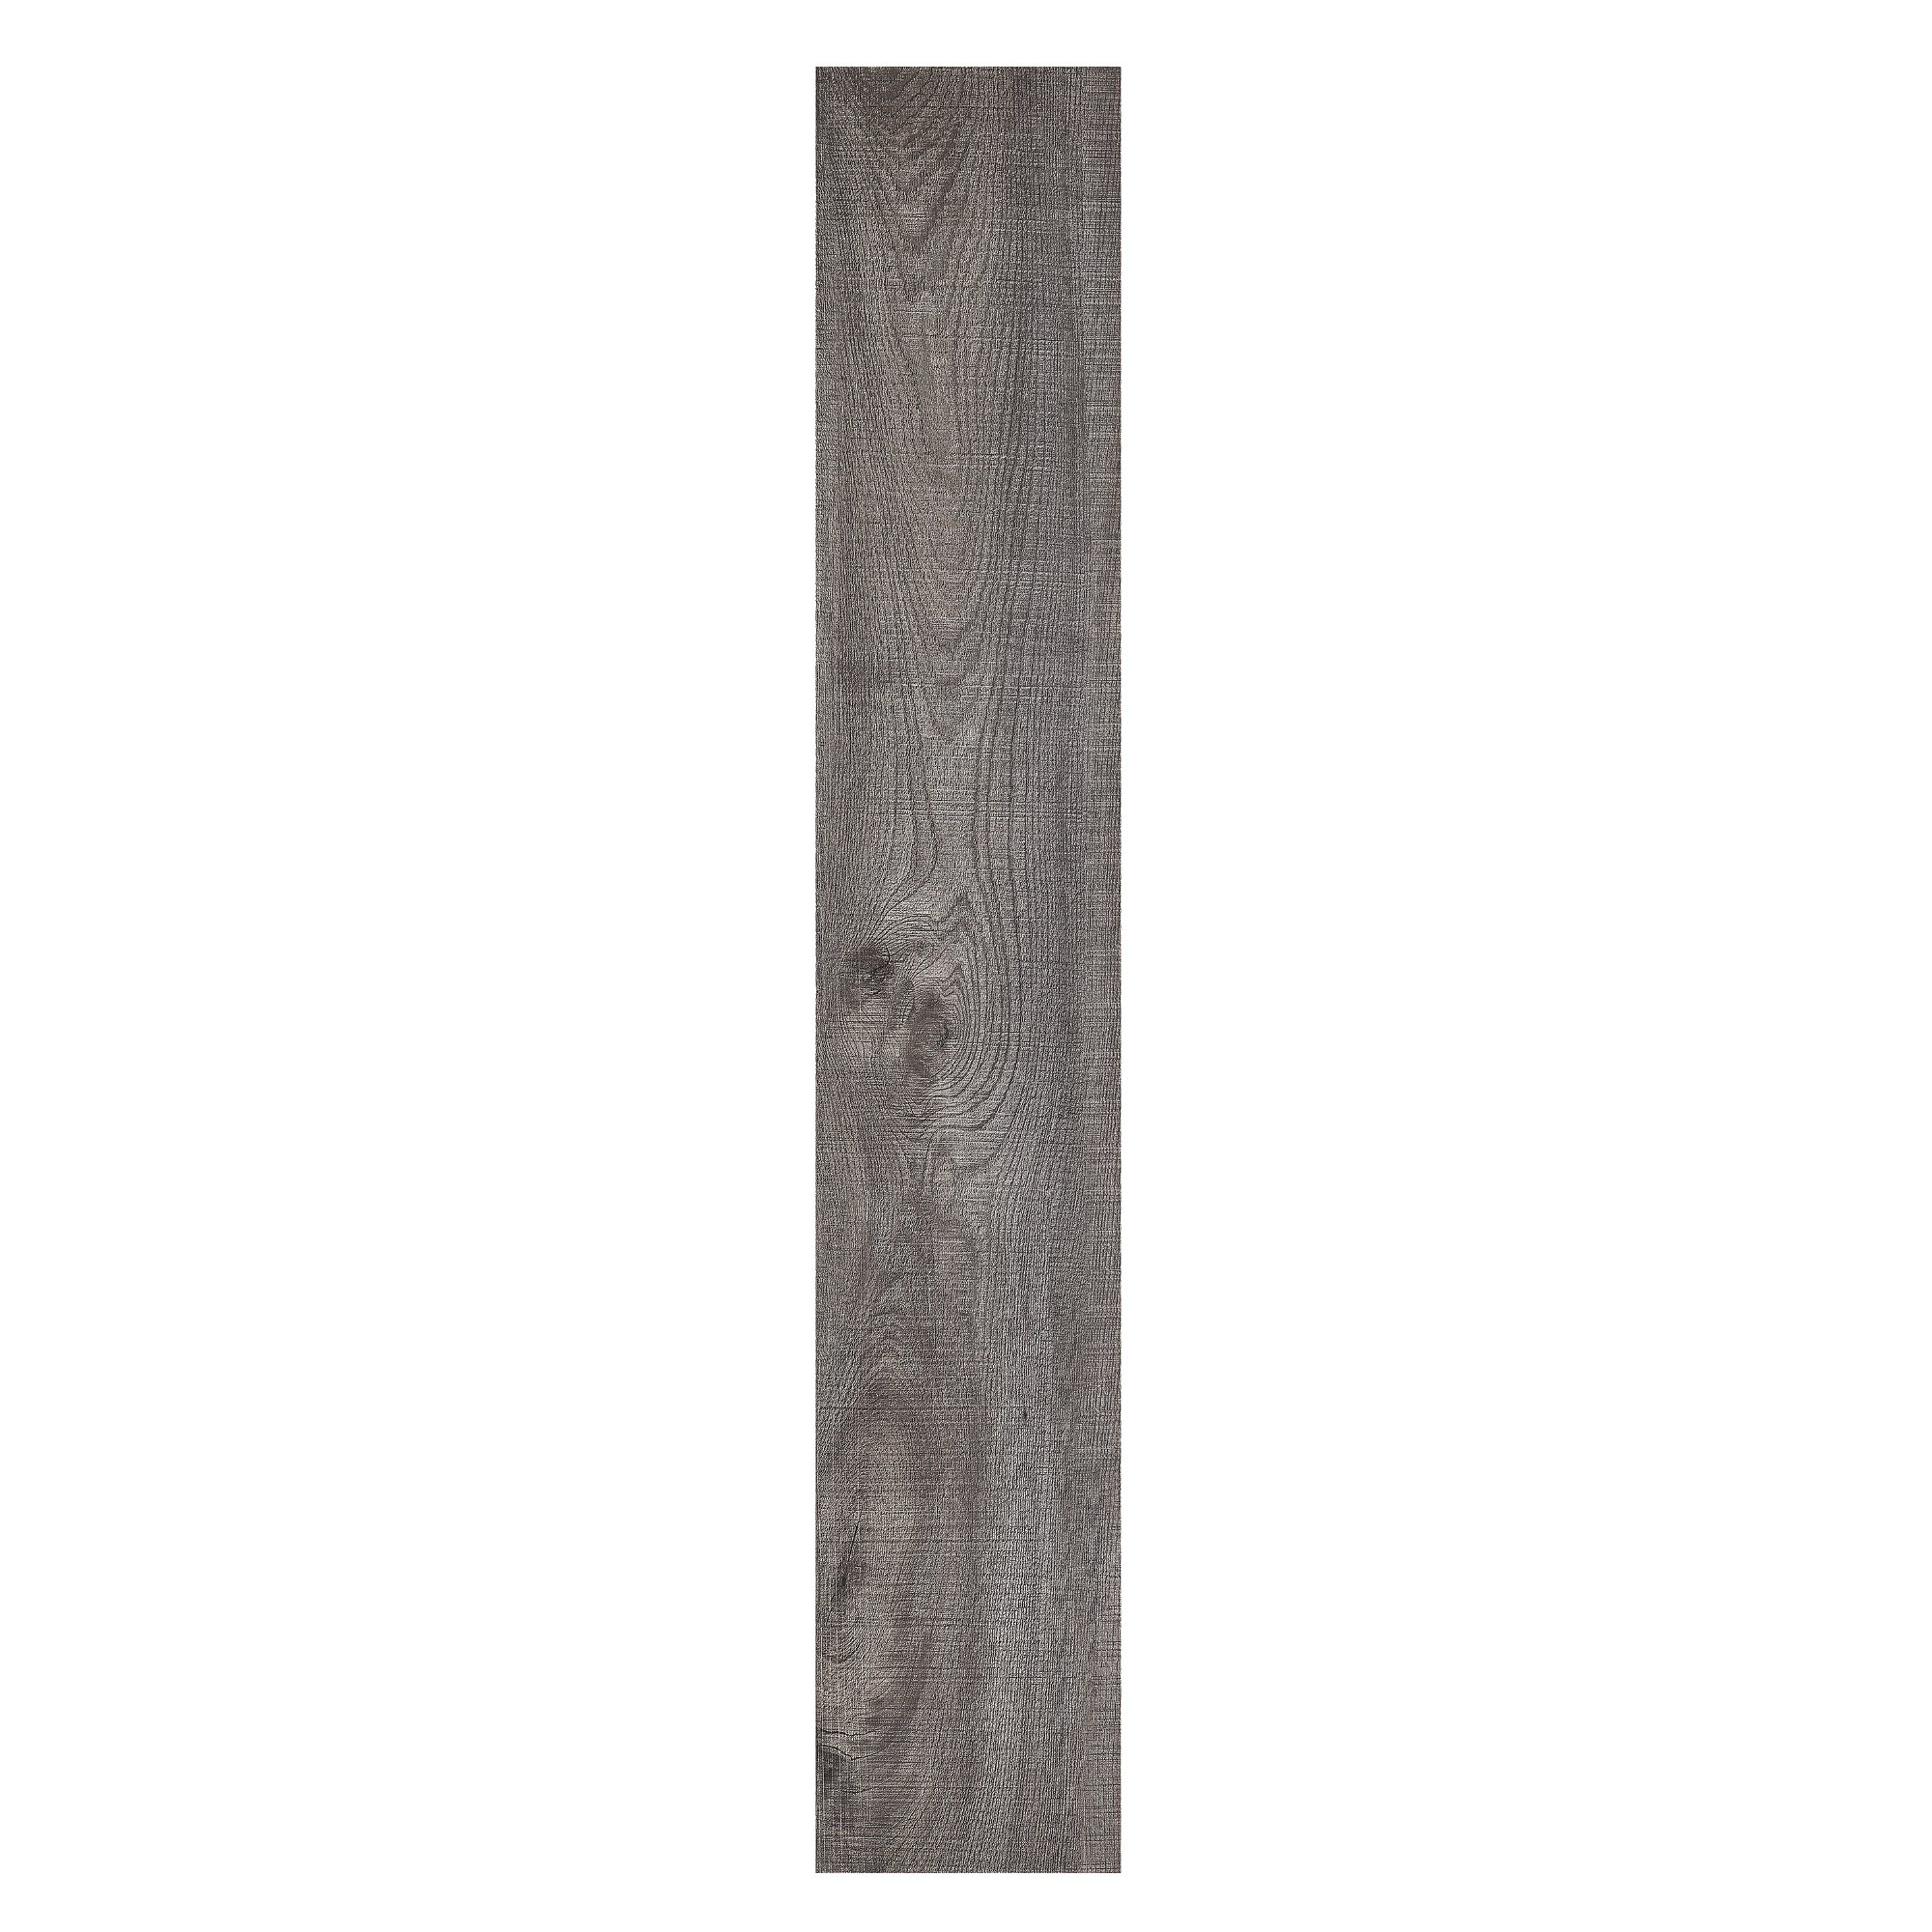 Achim Home Furnishings STP2.0RG10 2mm Sterling 10 Vinyl Planks, 6'' x 36'', Rustic Grey